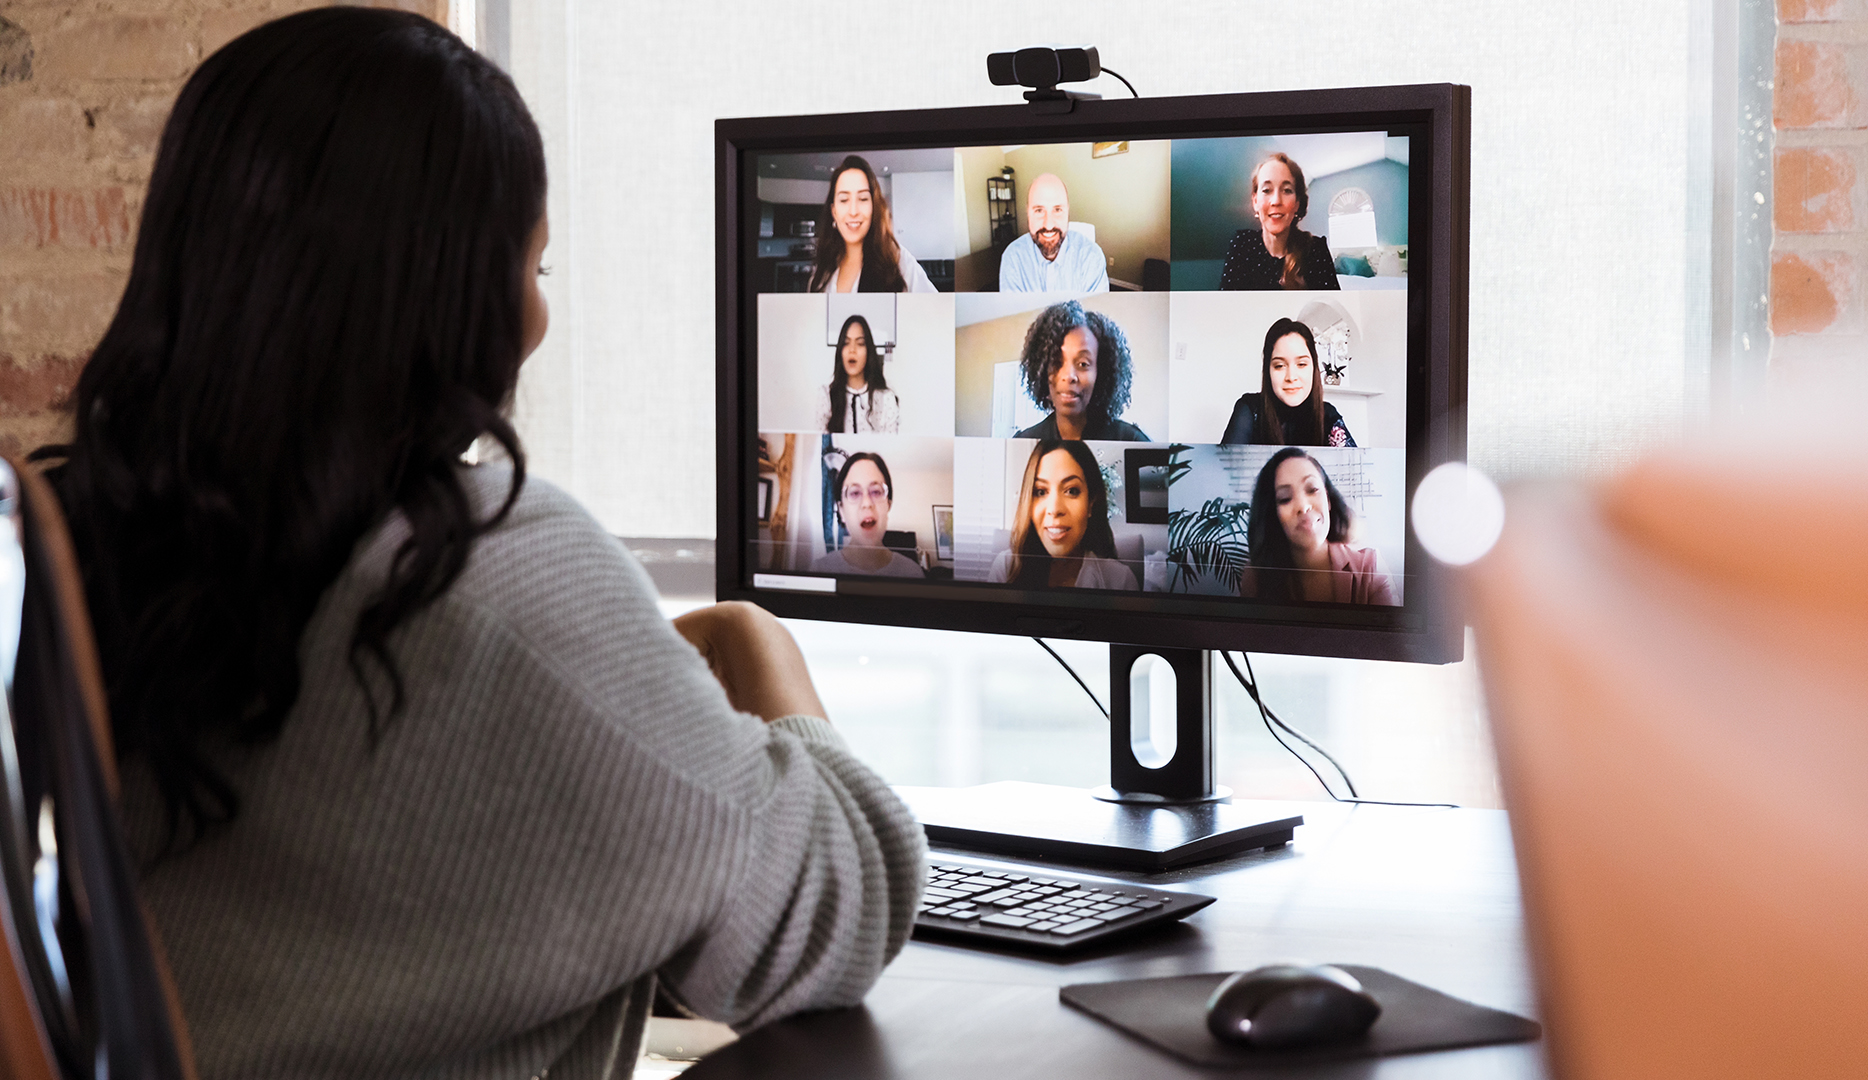 Top Tips for Building Team Camaraderie in a Remote Workplace